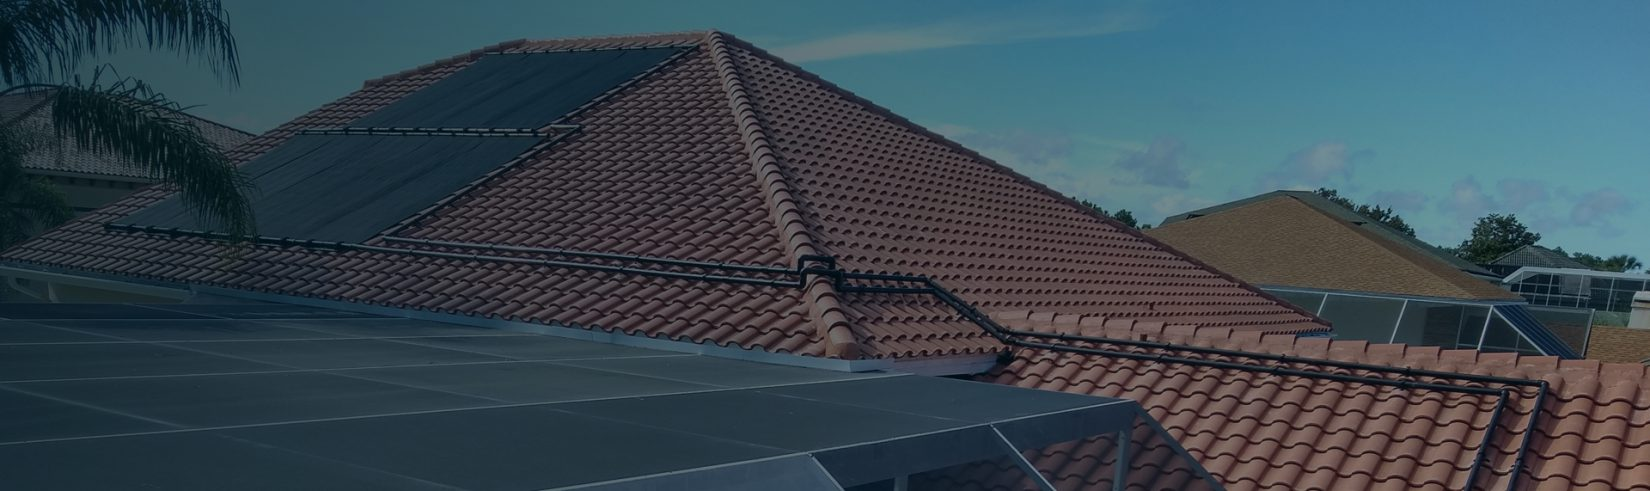 Solar Pool Heater Panels on a Roof